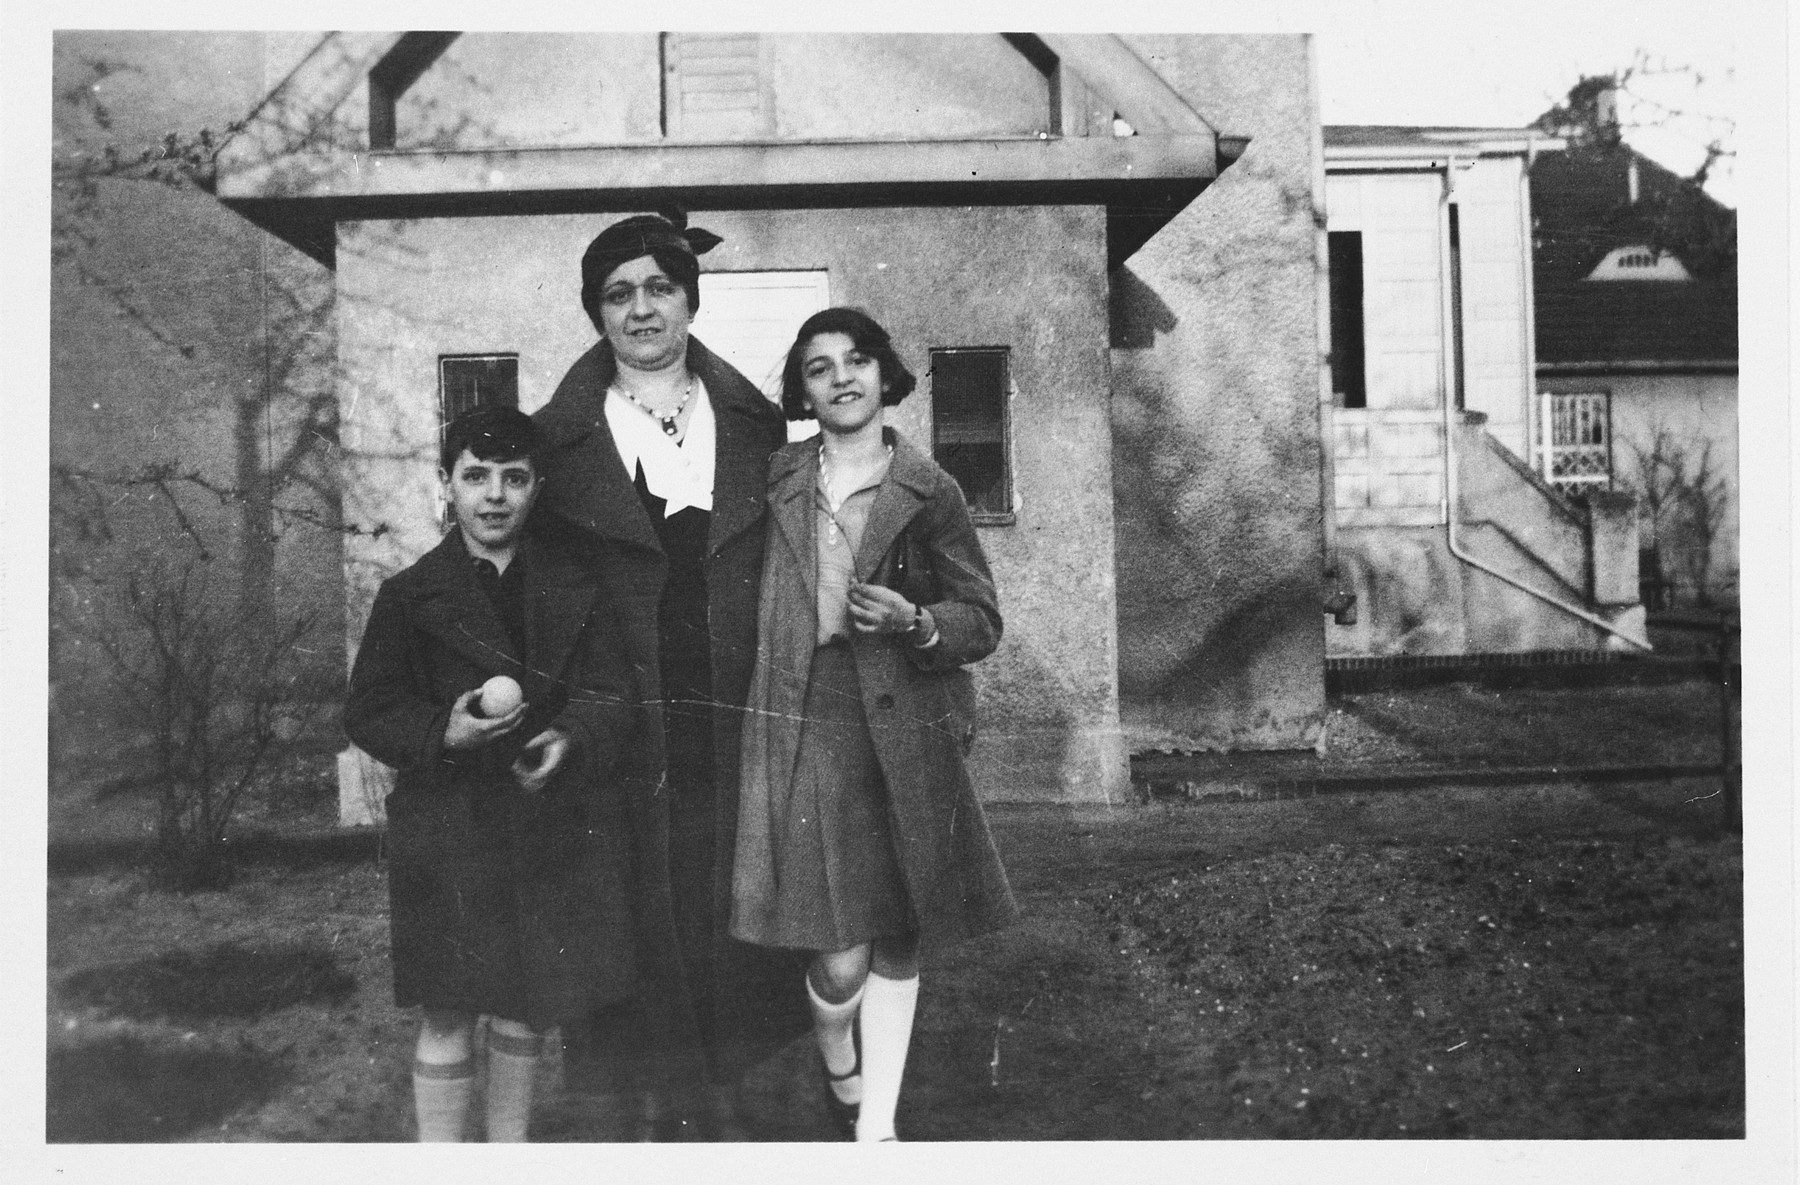 A Jewish mother and her two children pose outside an old age home in Germany.  Pictured from left to right are: Heinz, Ella and Alice Redlich.